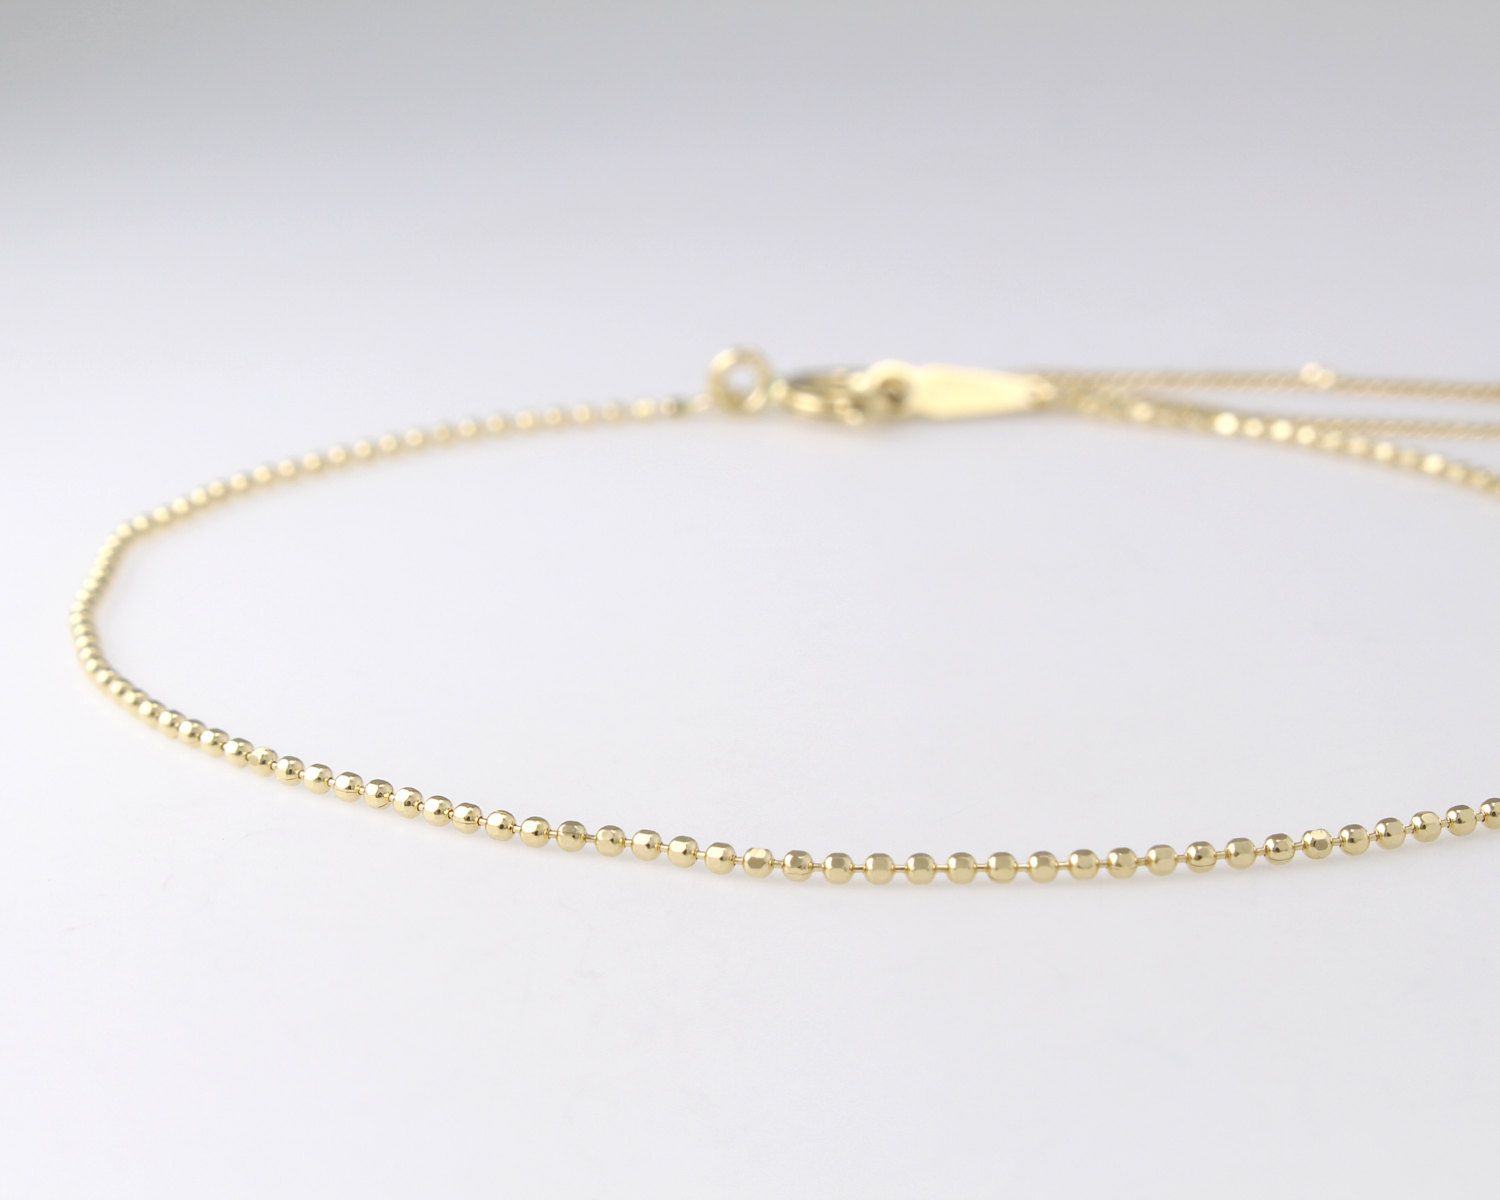 14k Solid Gold Delicate Bracelet Dainty Chain Thin Layering Minimalist By Goldengesture